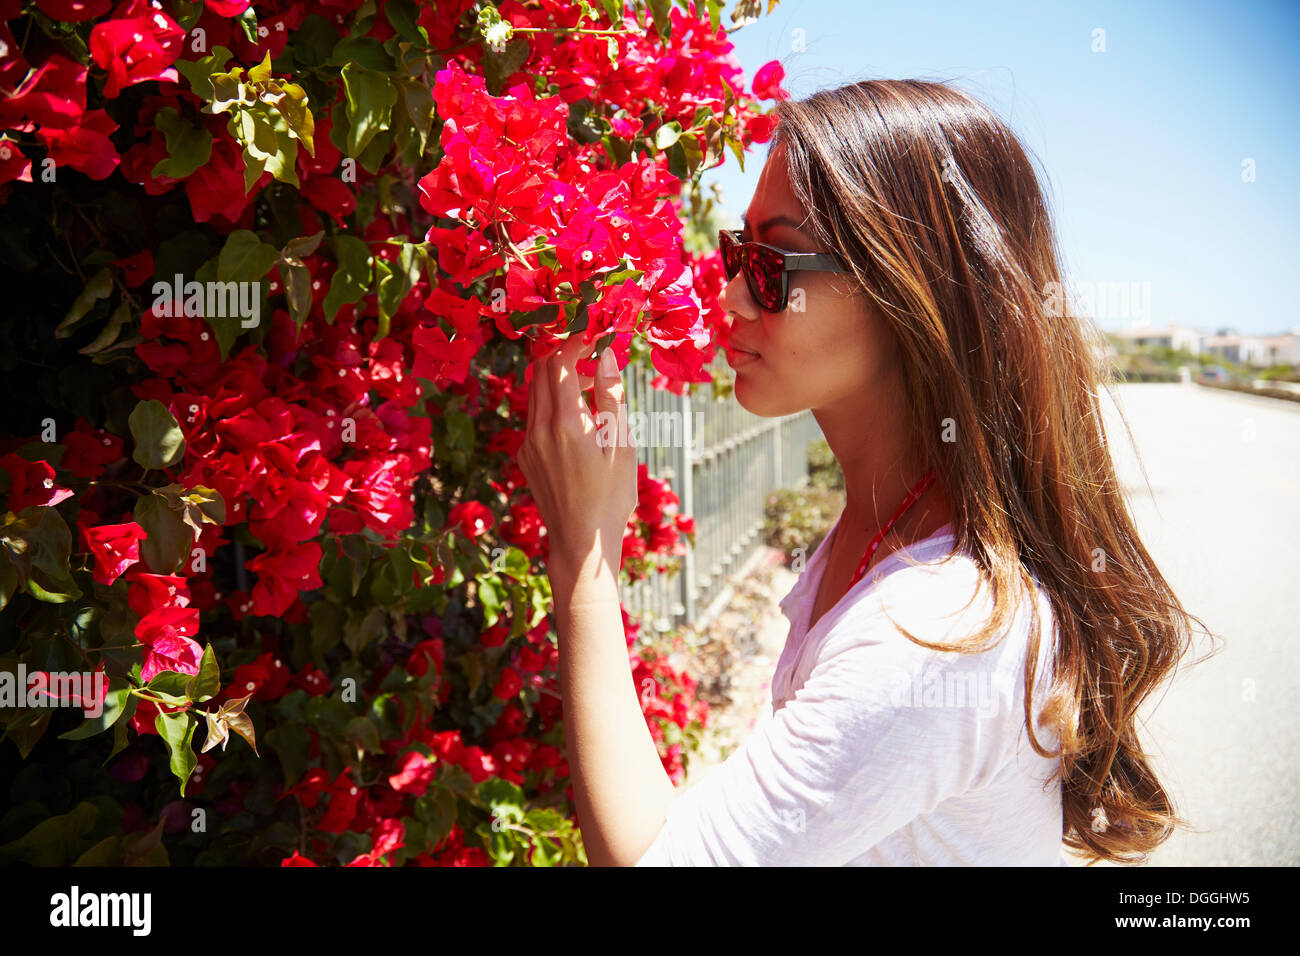 Young woman smelling flowers, Palos Verdes, California, USA - Stock Image